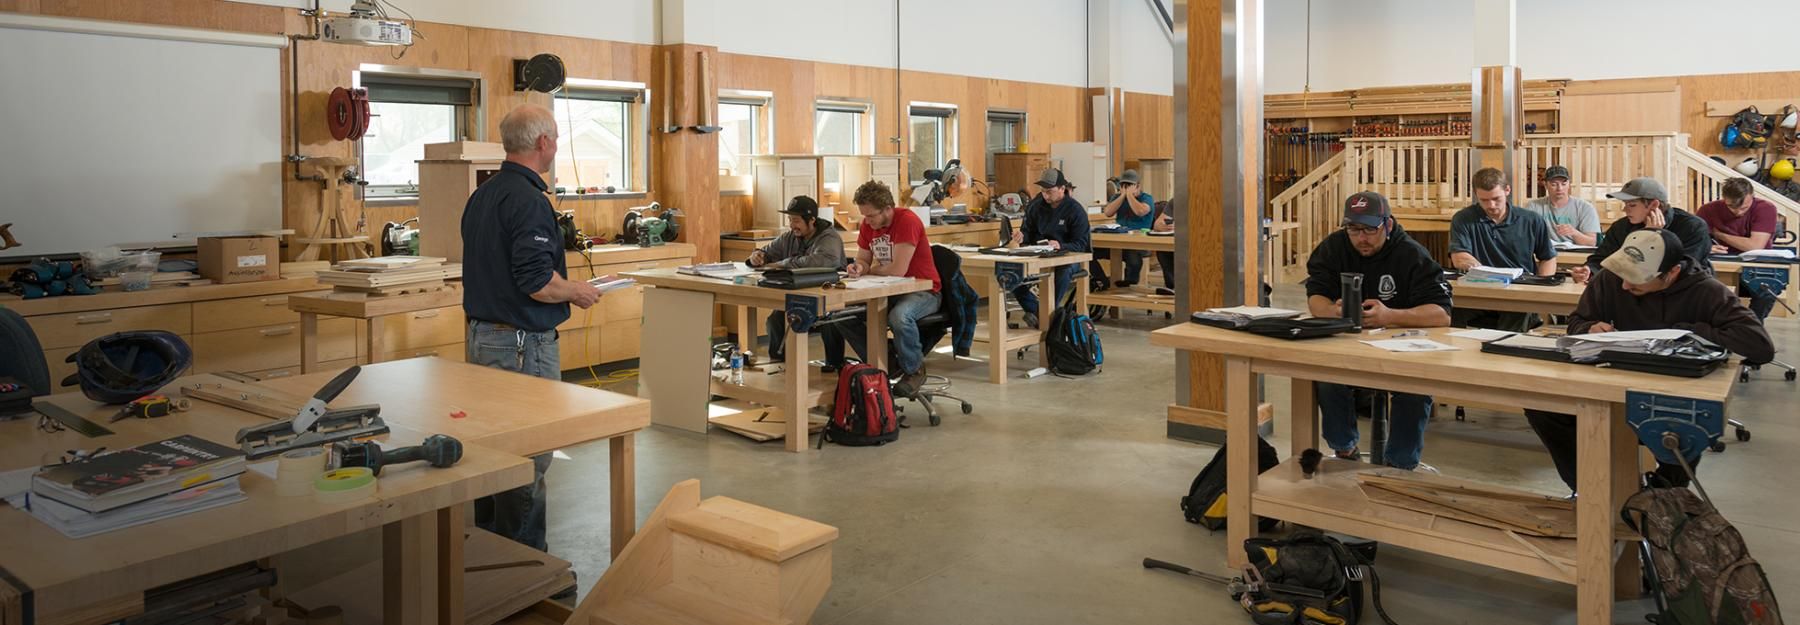 Carpentry Apprenticeship classroom with students and instructor